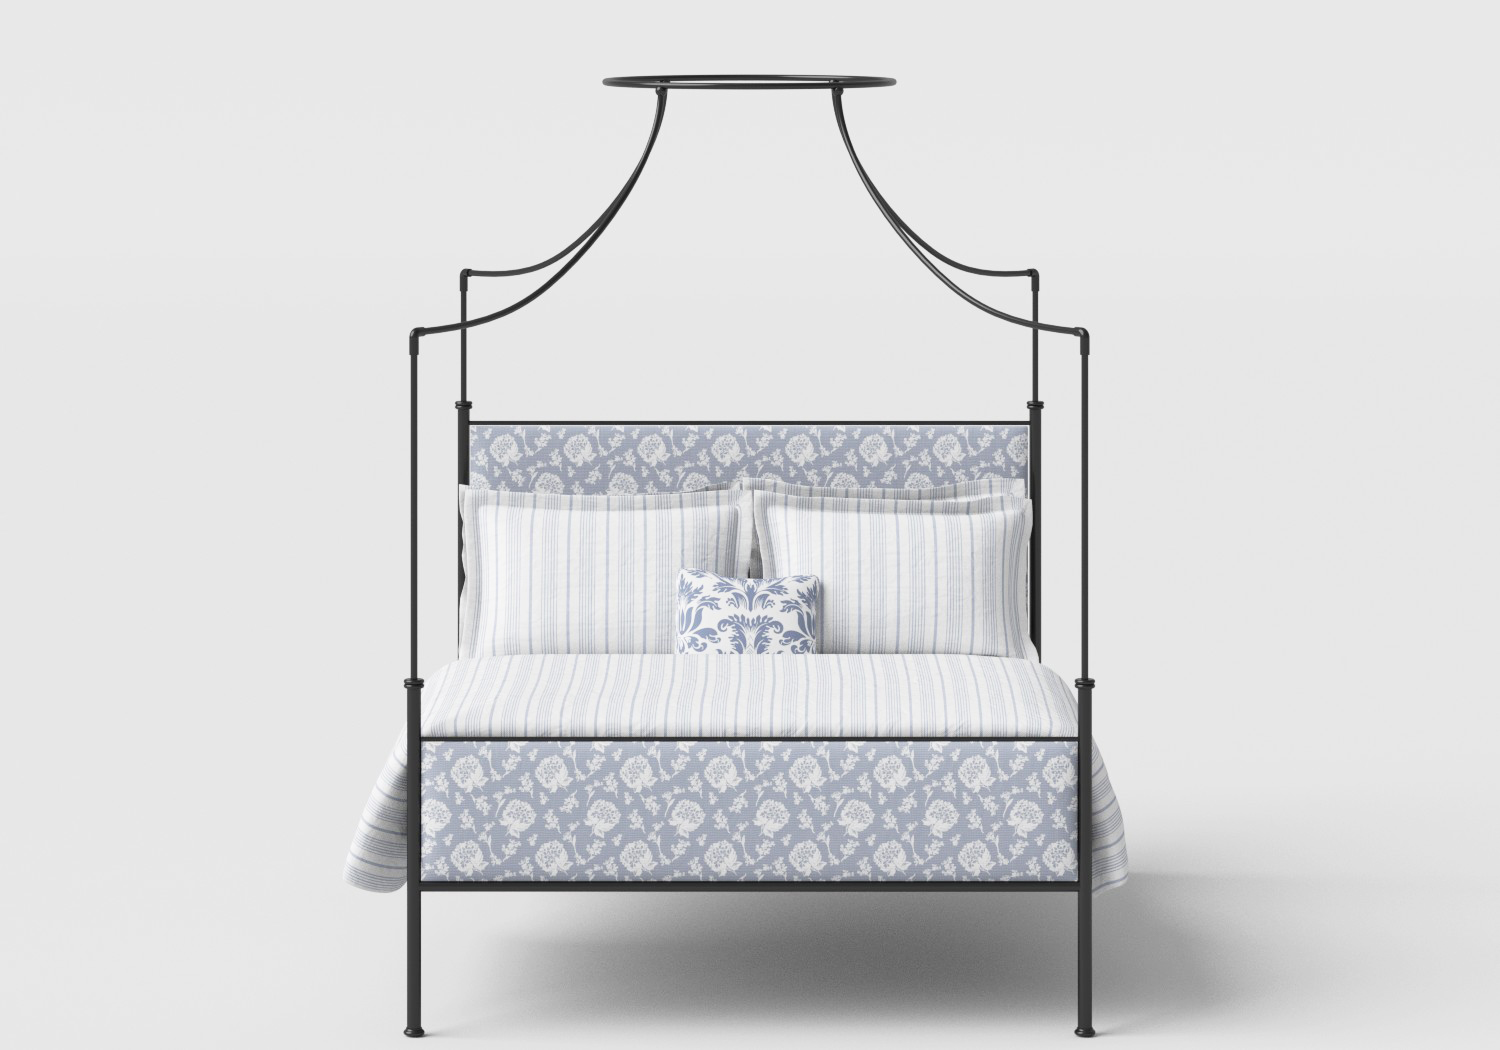 Waterloo Wrought Iron/Metal Four Poster Bed in Satin Black with Fabric Upholstered Panel